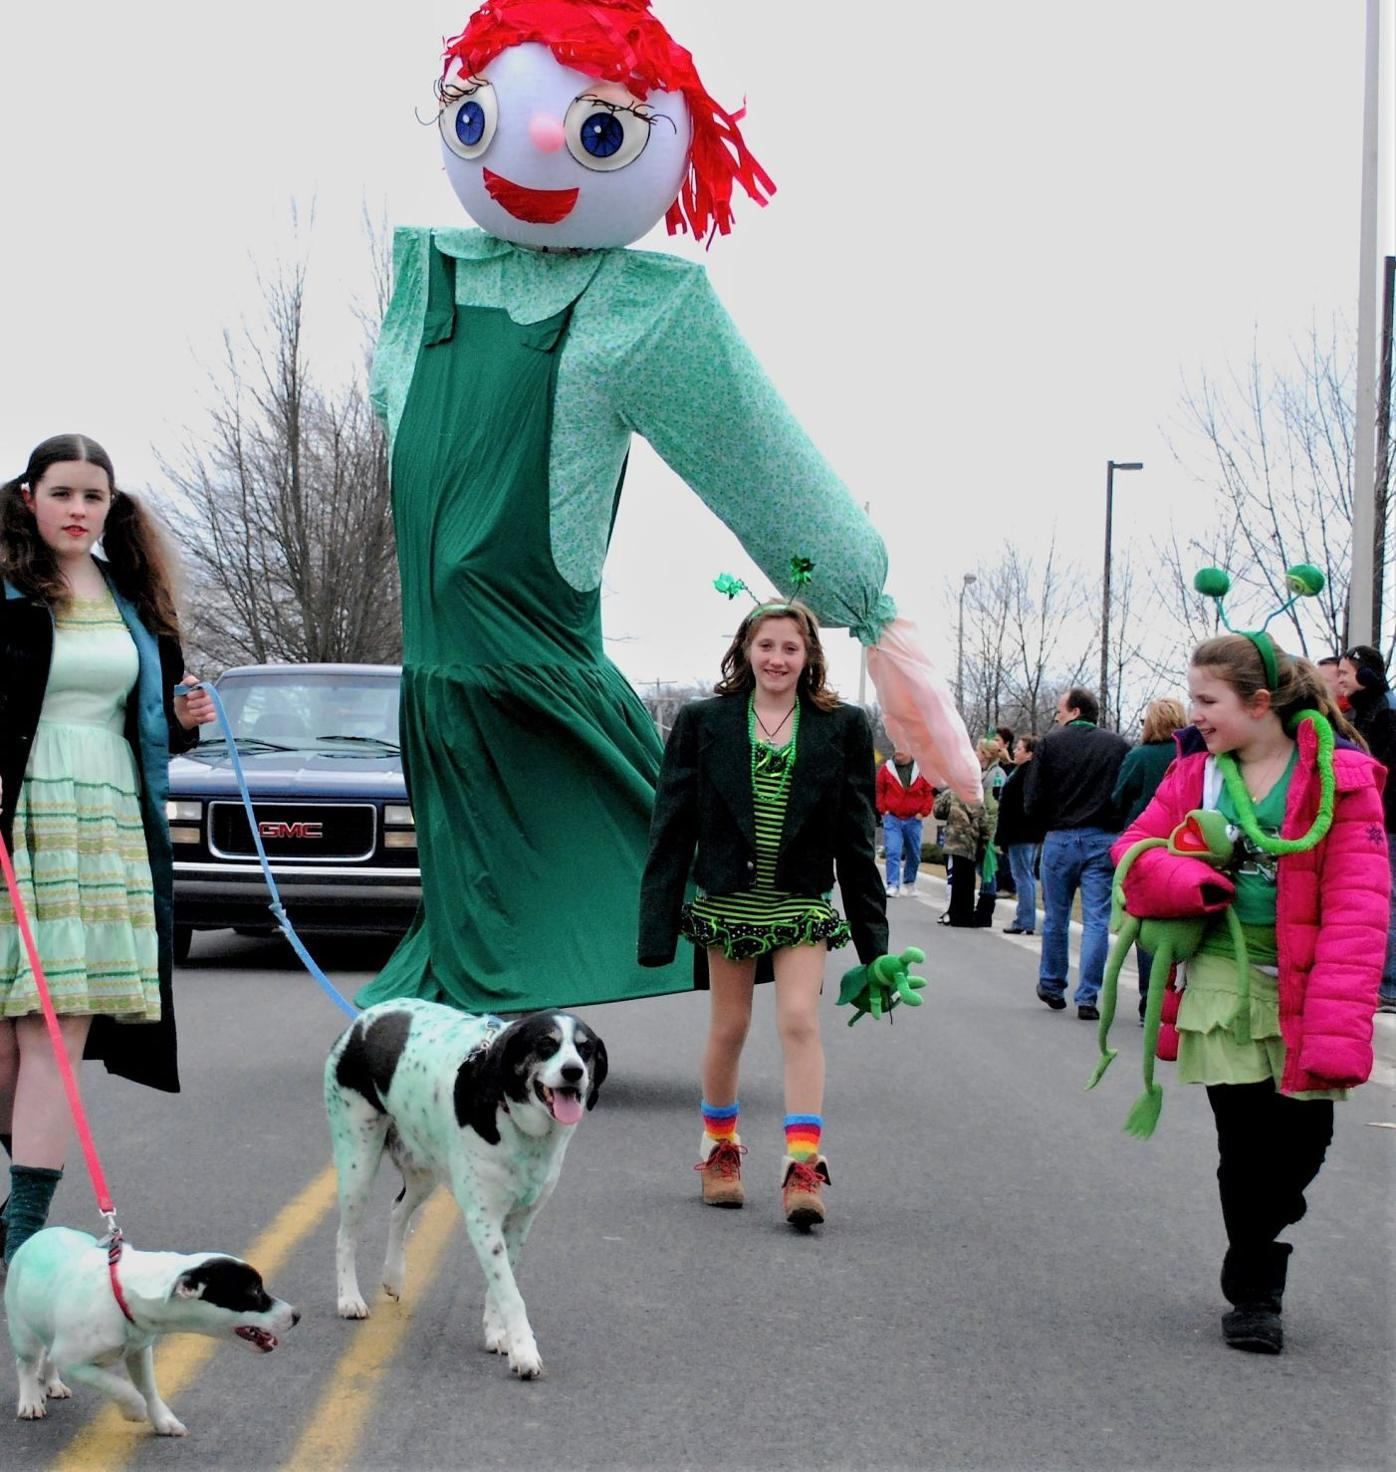 Giant walking puppet to appear at Twistful Meadow